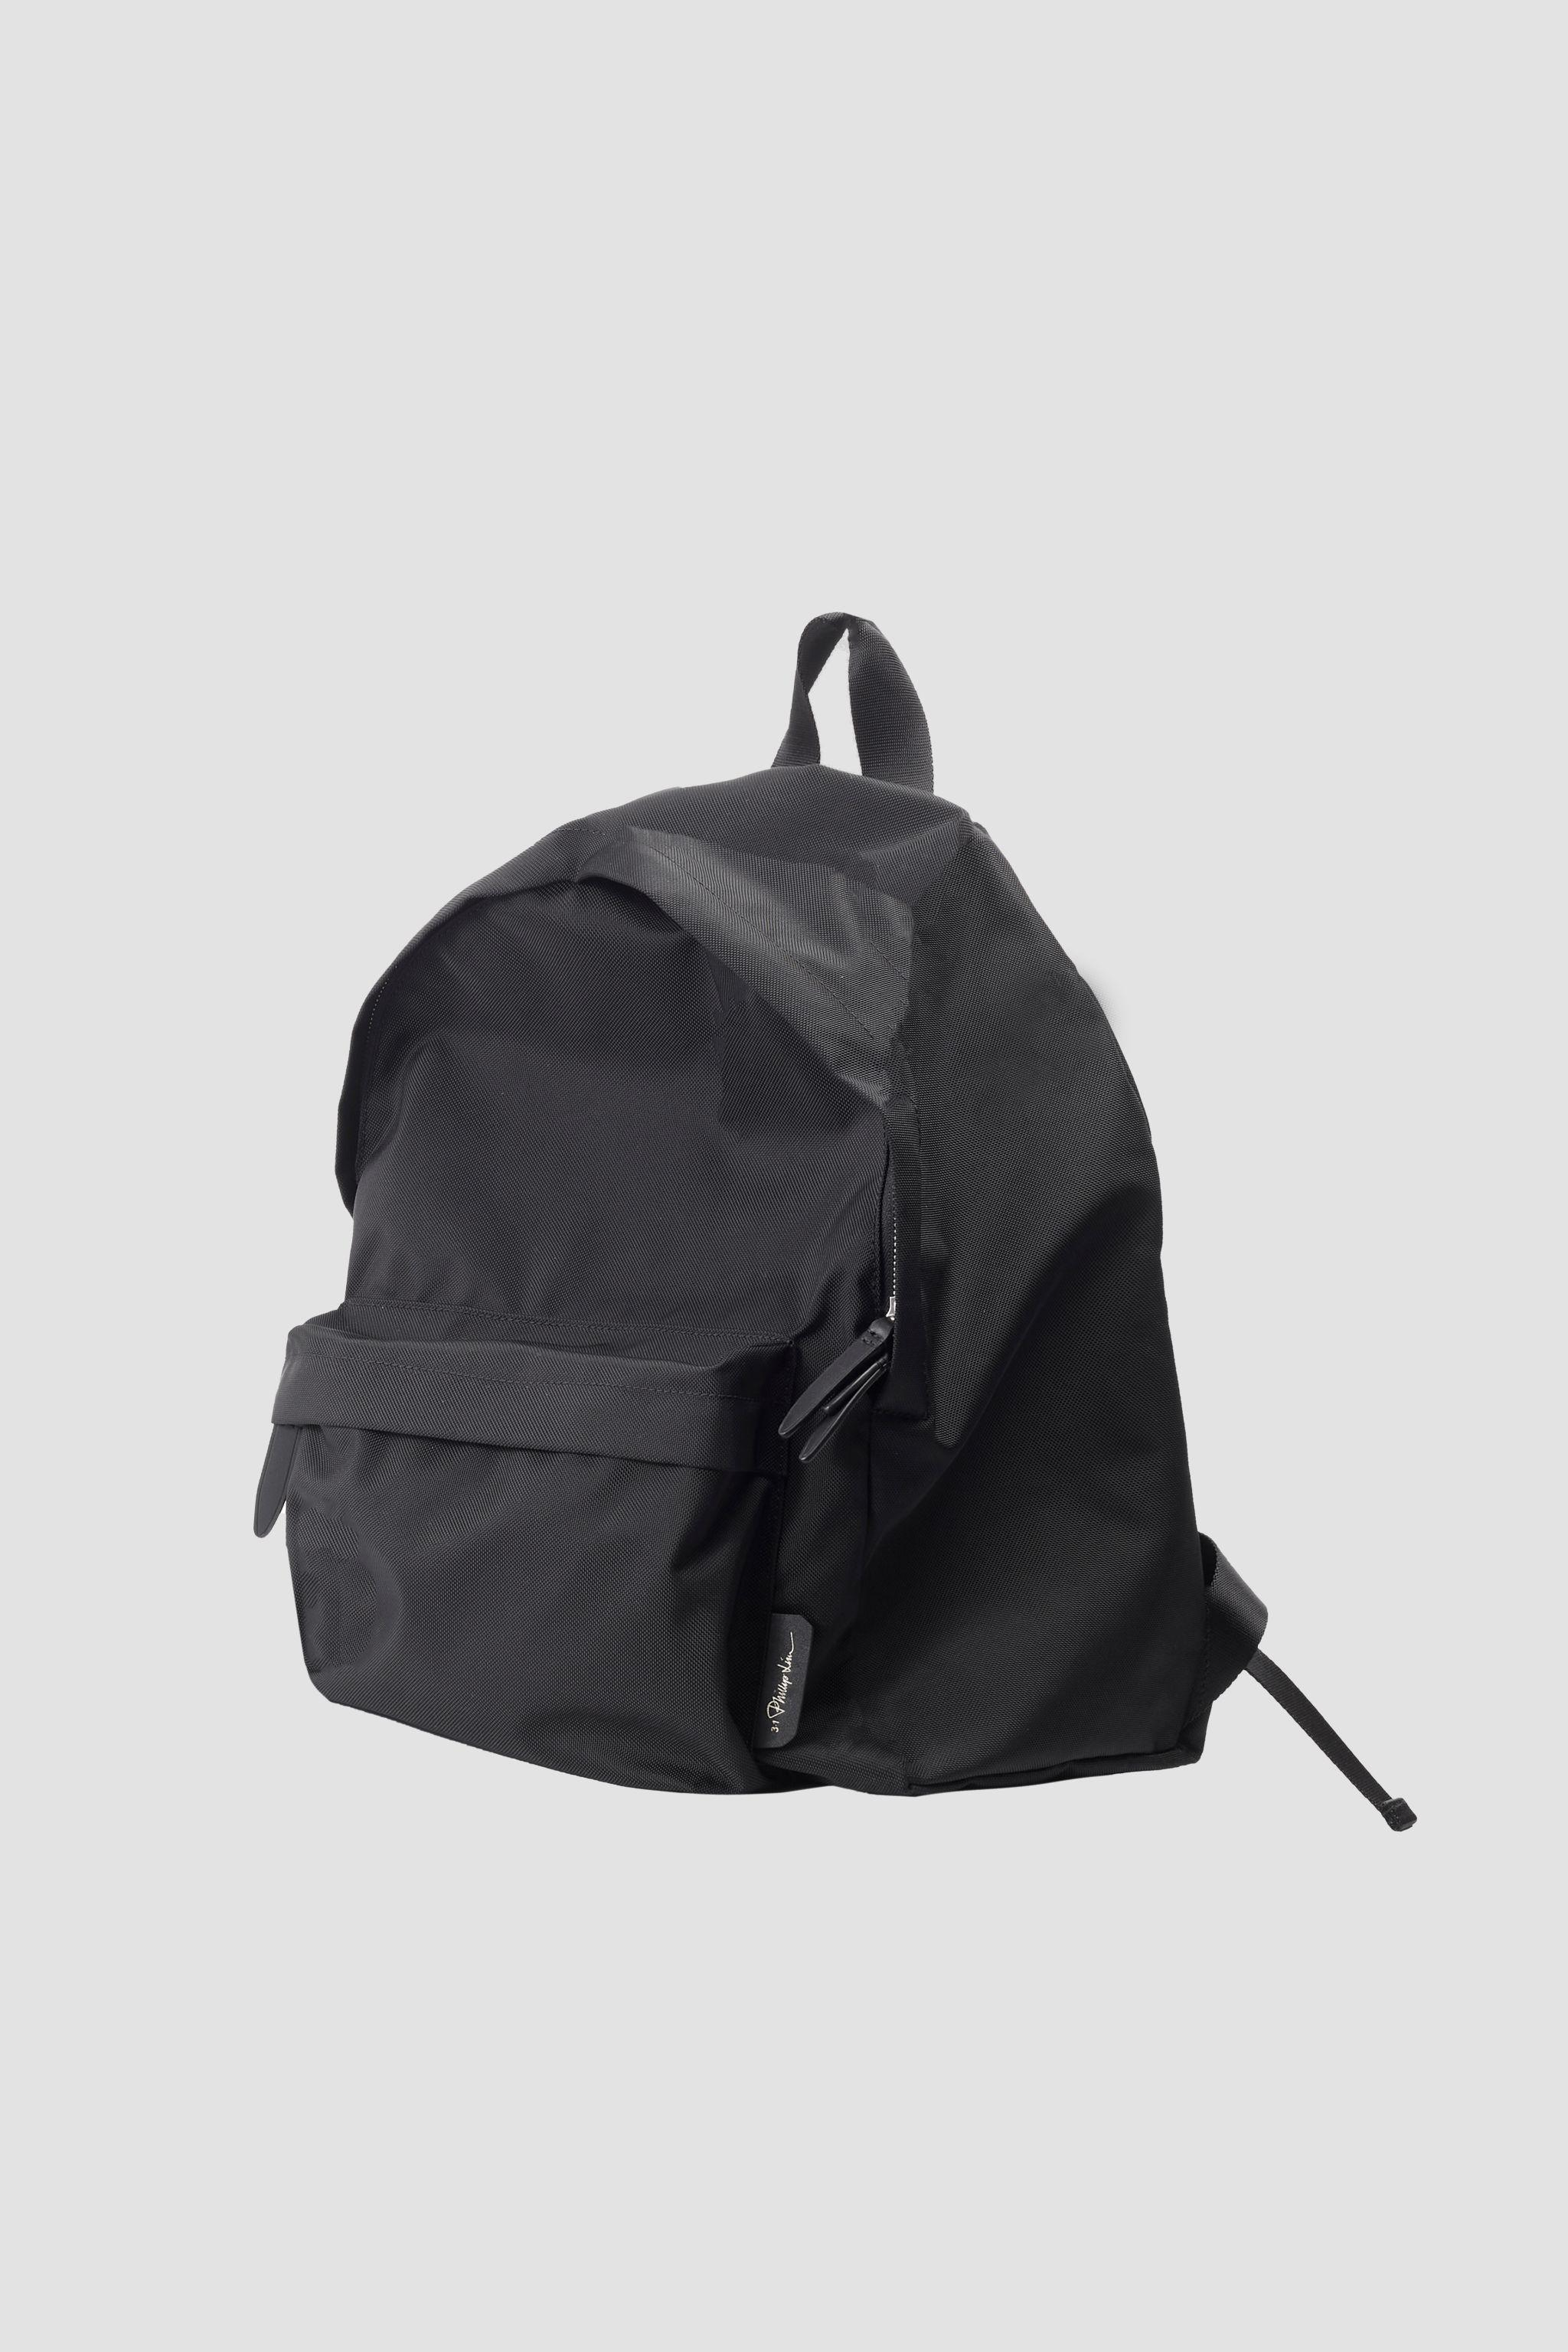 The Deconstructed Backpack 1